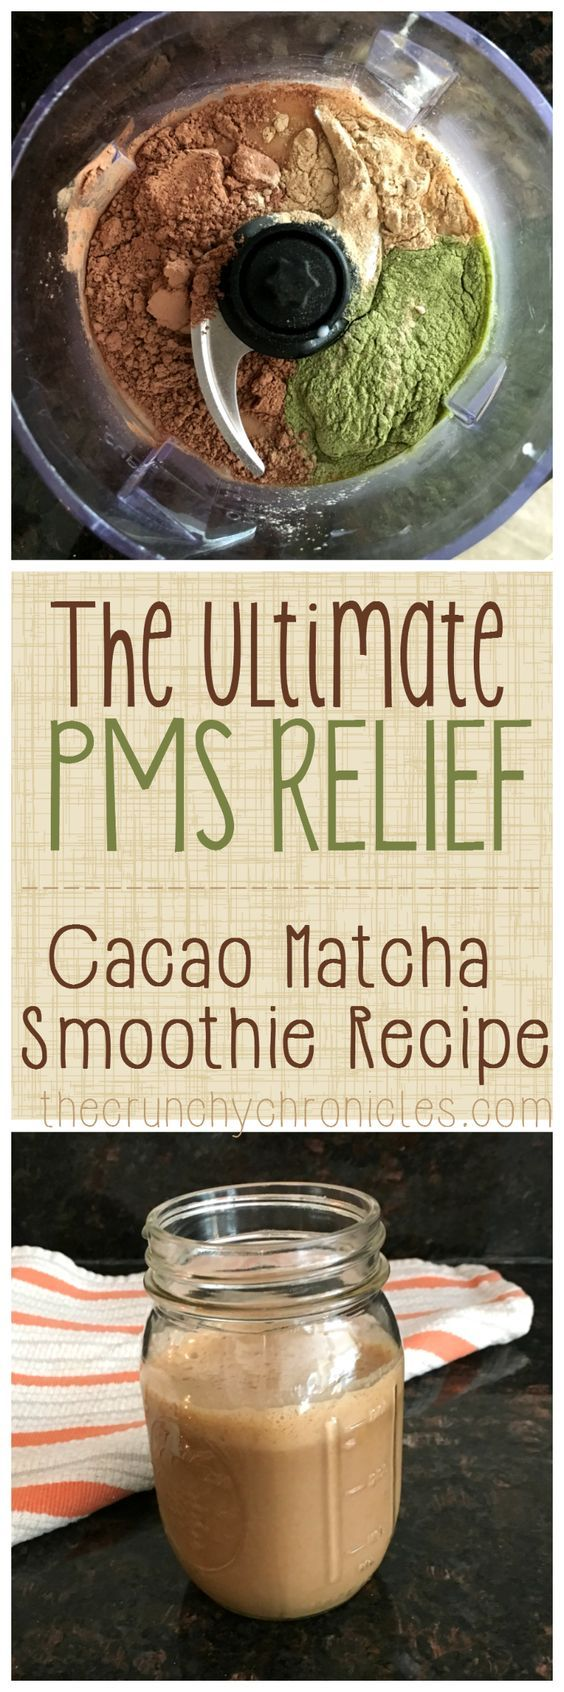 Cacao Matcha Smoothie Recipe - super delicious but also the ultimate PMS and PMDD relief! A great home remedy for hormonal imbalances and it is rich in magnesium. Perfect breakfast smoothie to start your day with or a pick me up in the afternoon.